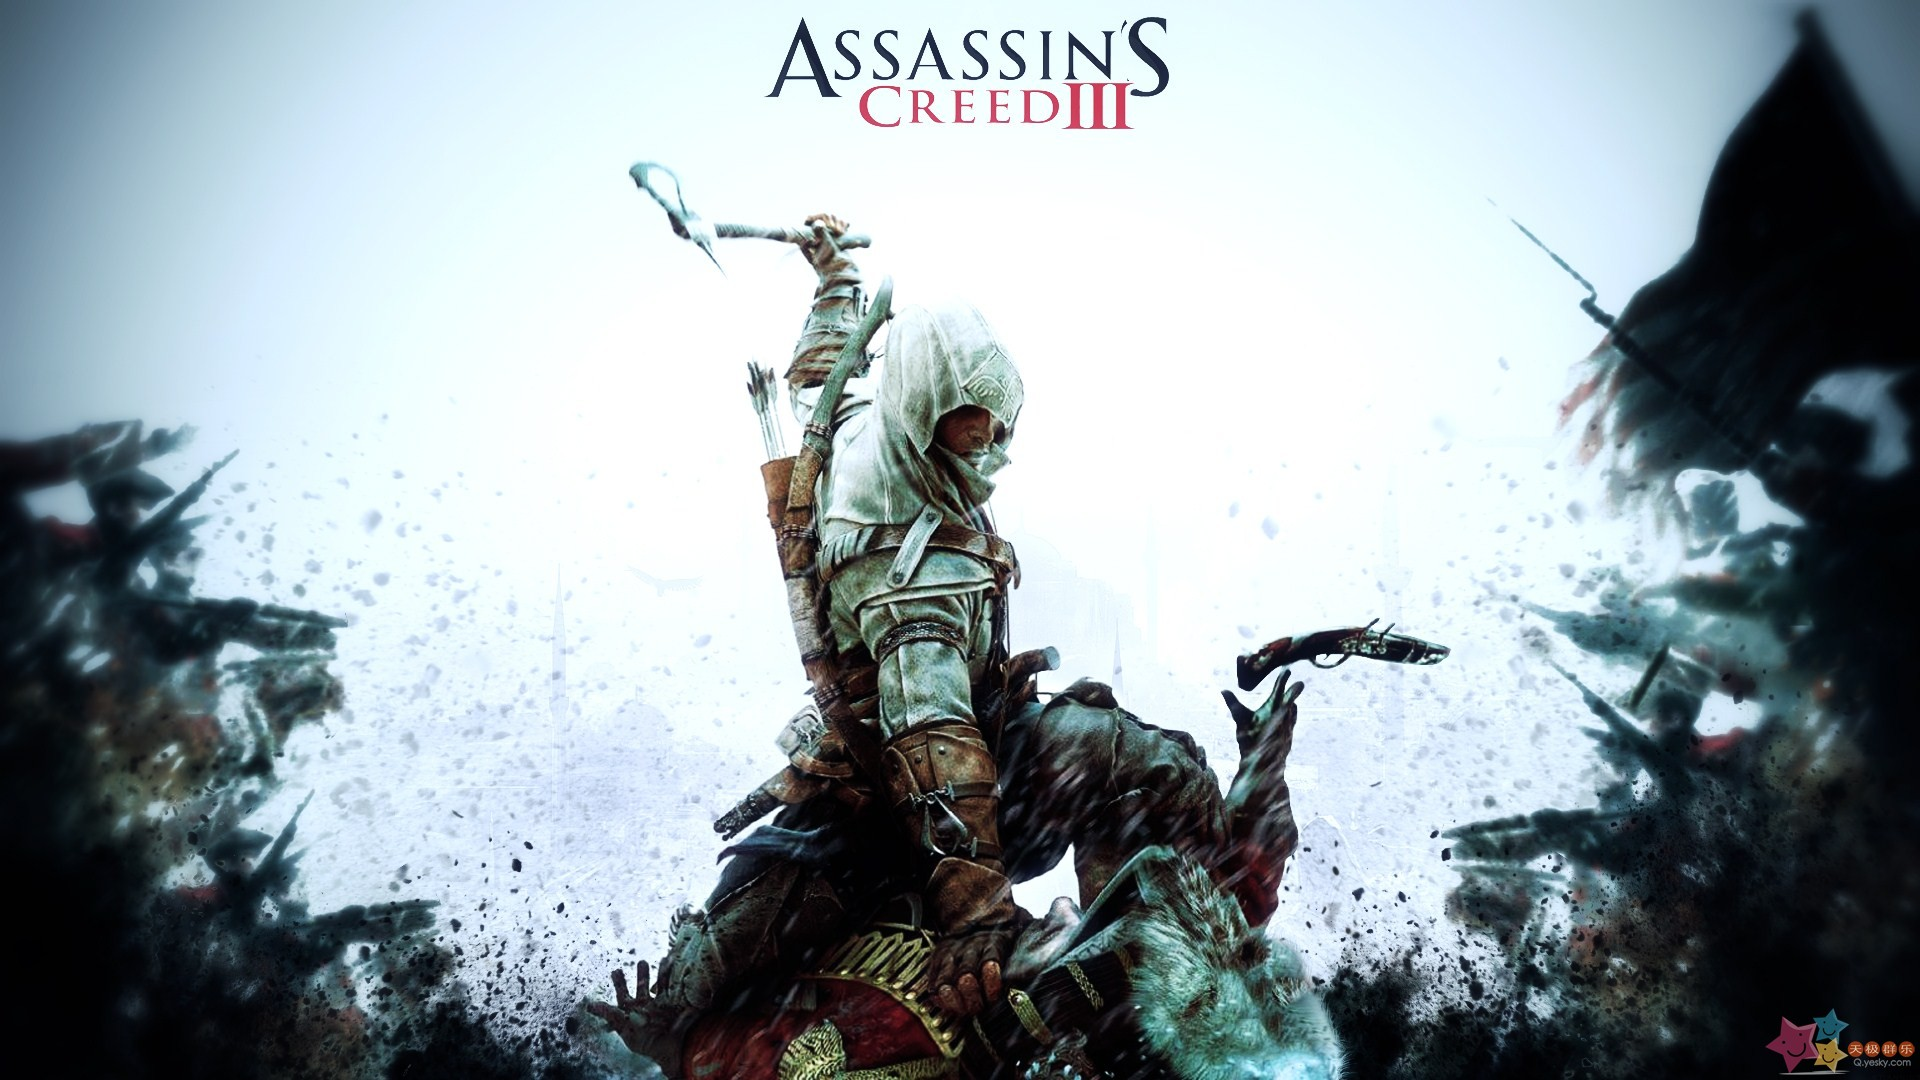 Video Game - Assassin's Creed III Wallpaper